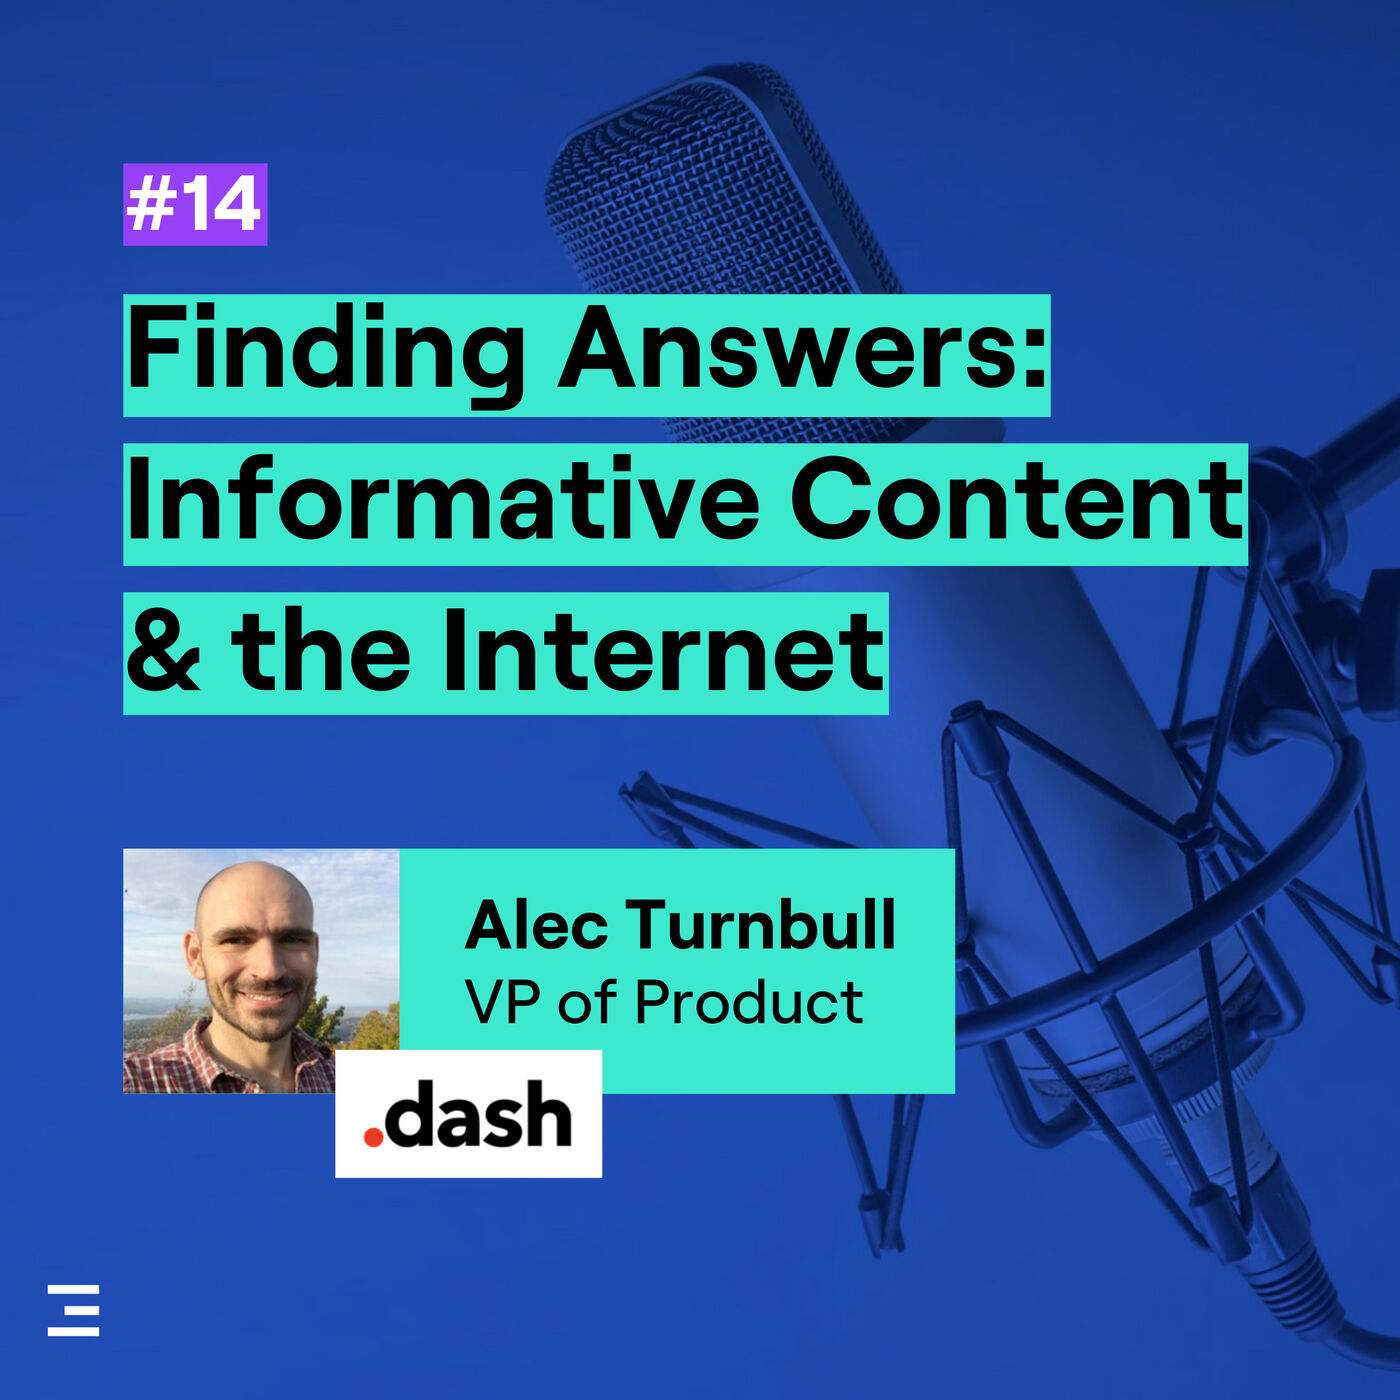 14. Finding Answers: Informative Content and the Internet